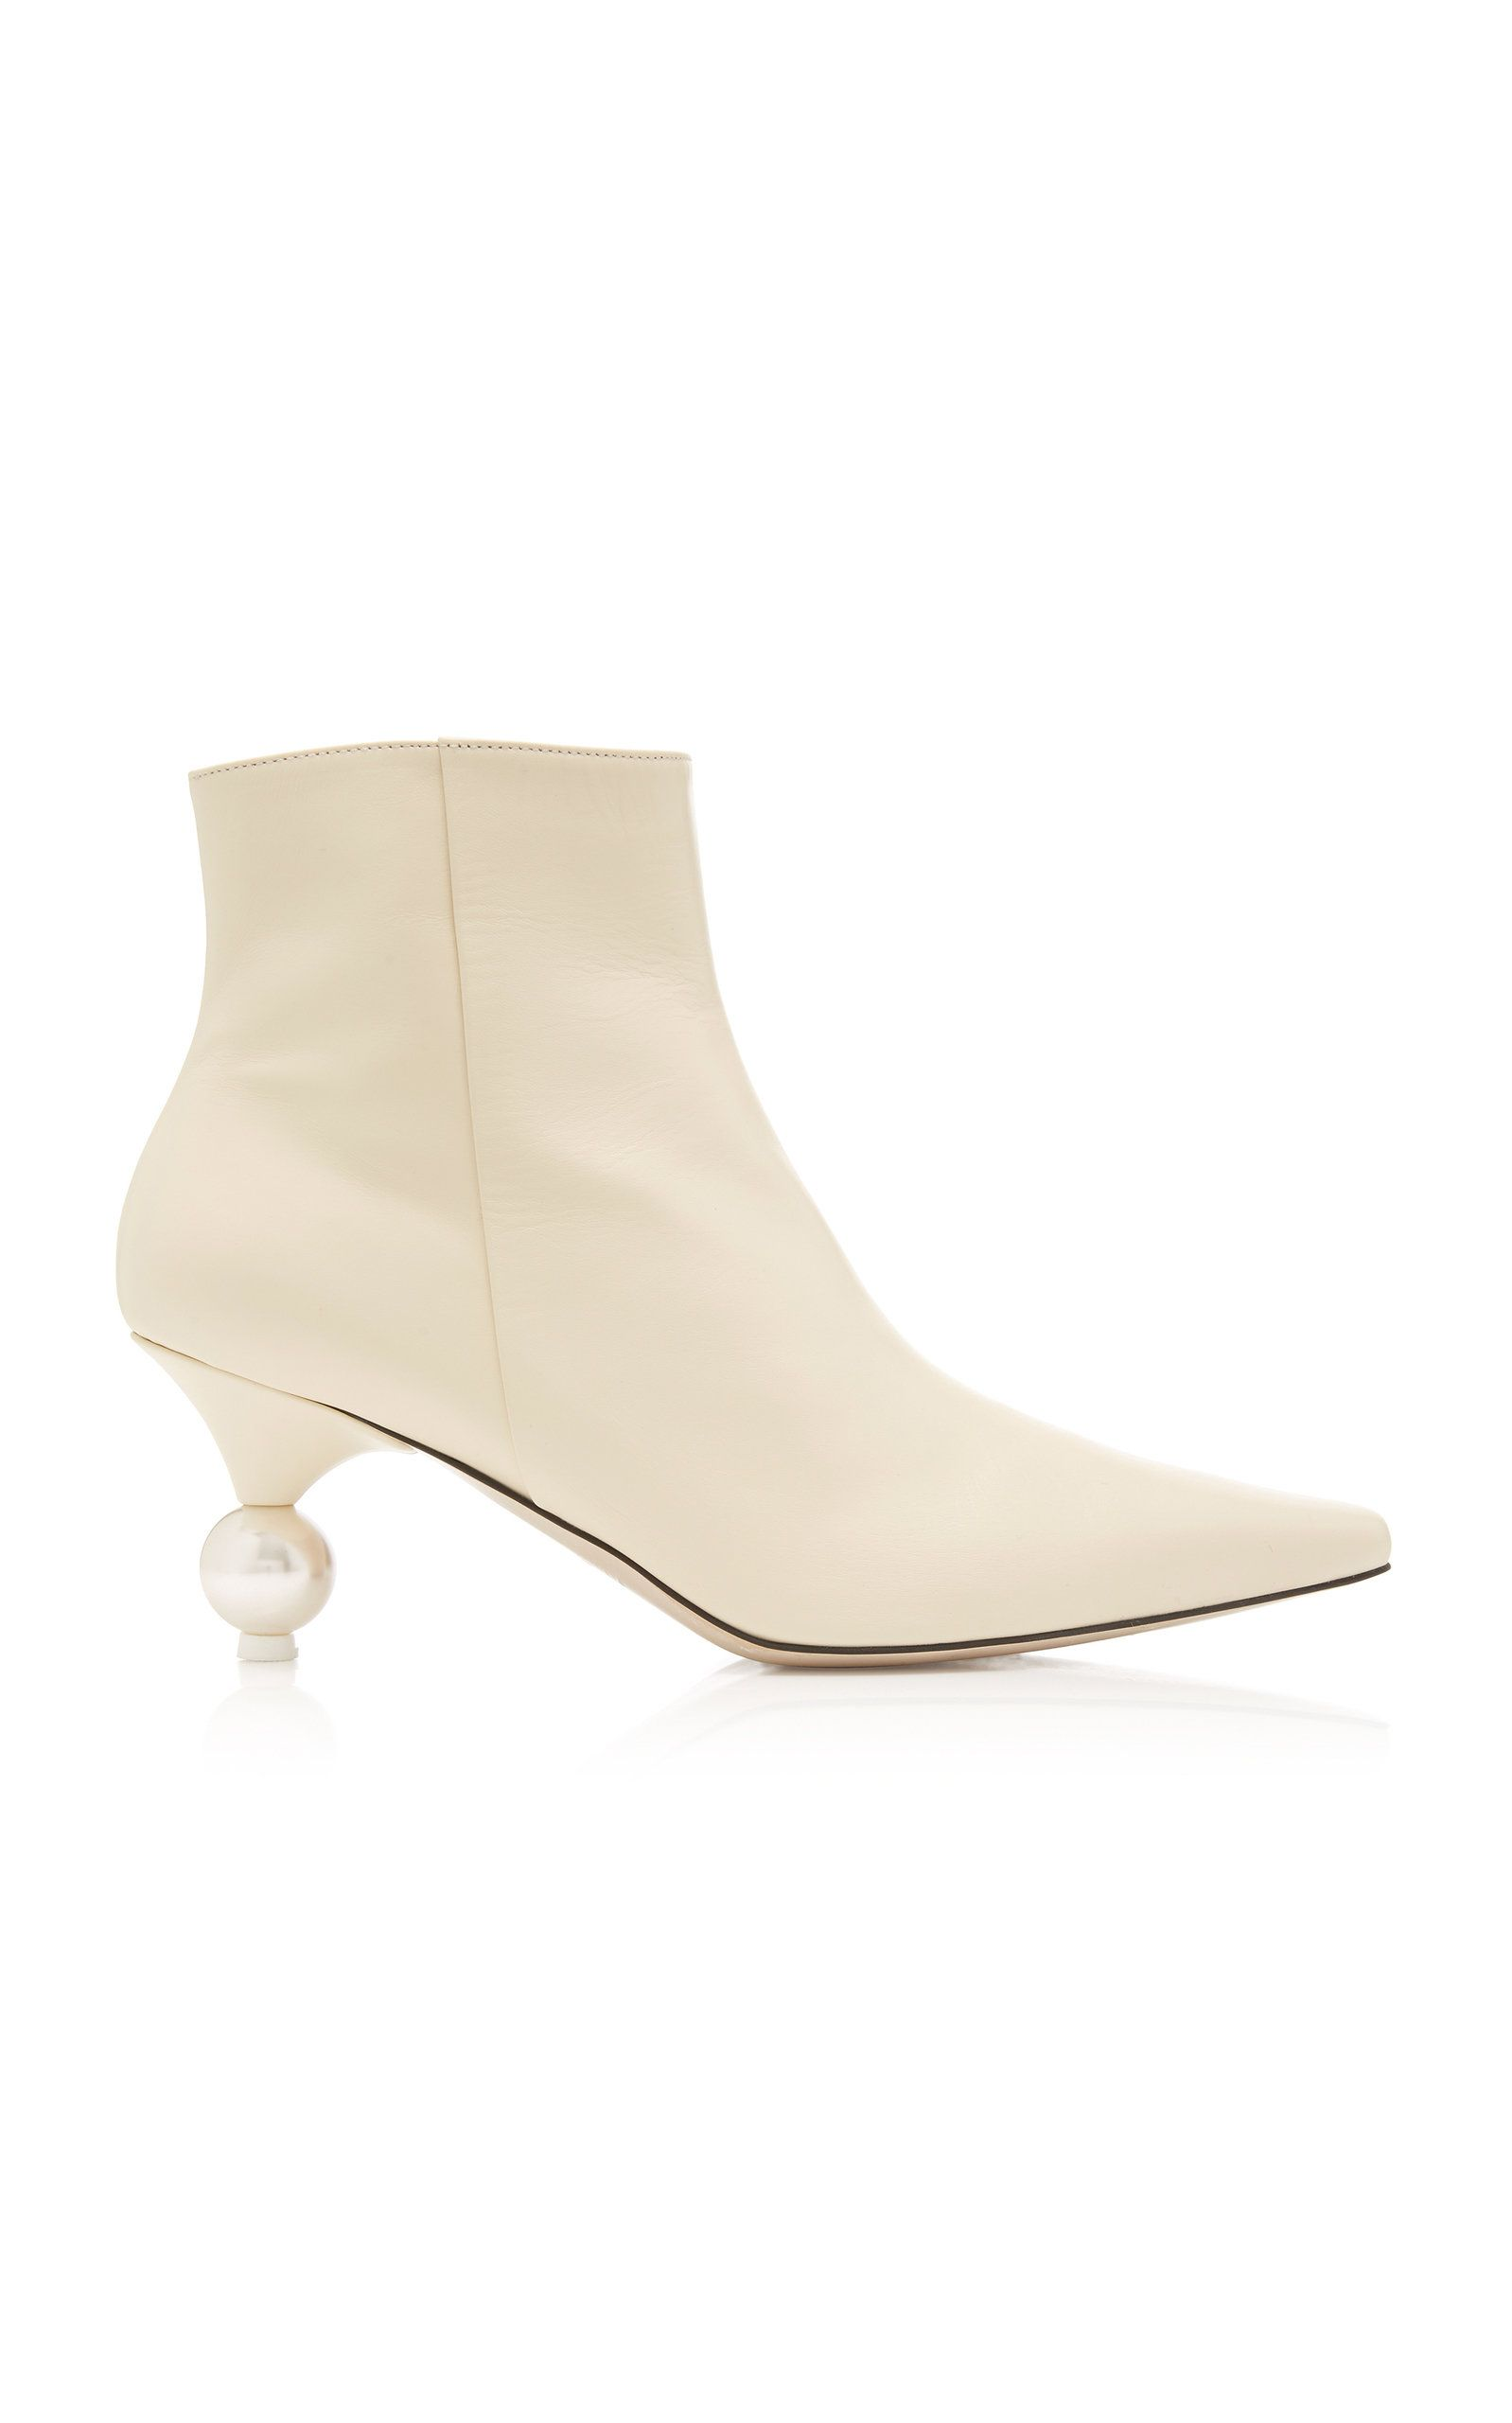 Yuul Yie Exclusive Martina Leather Ankle Boots Leather Ankle Boots Boots Fashion Boots